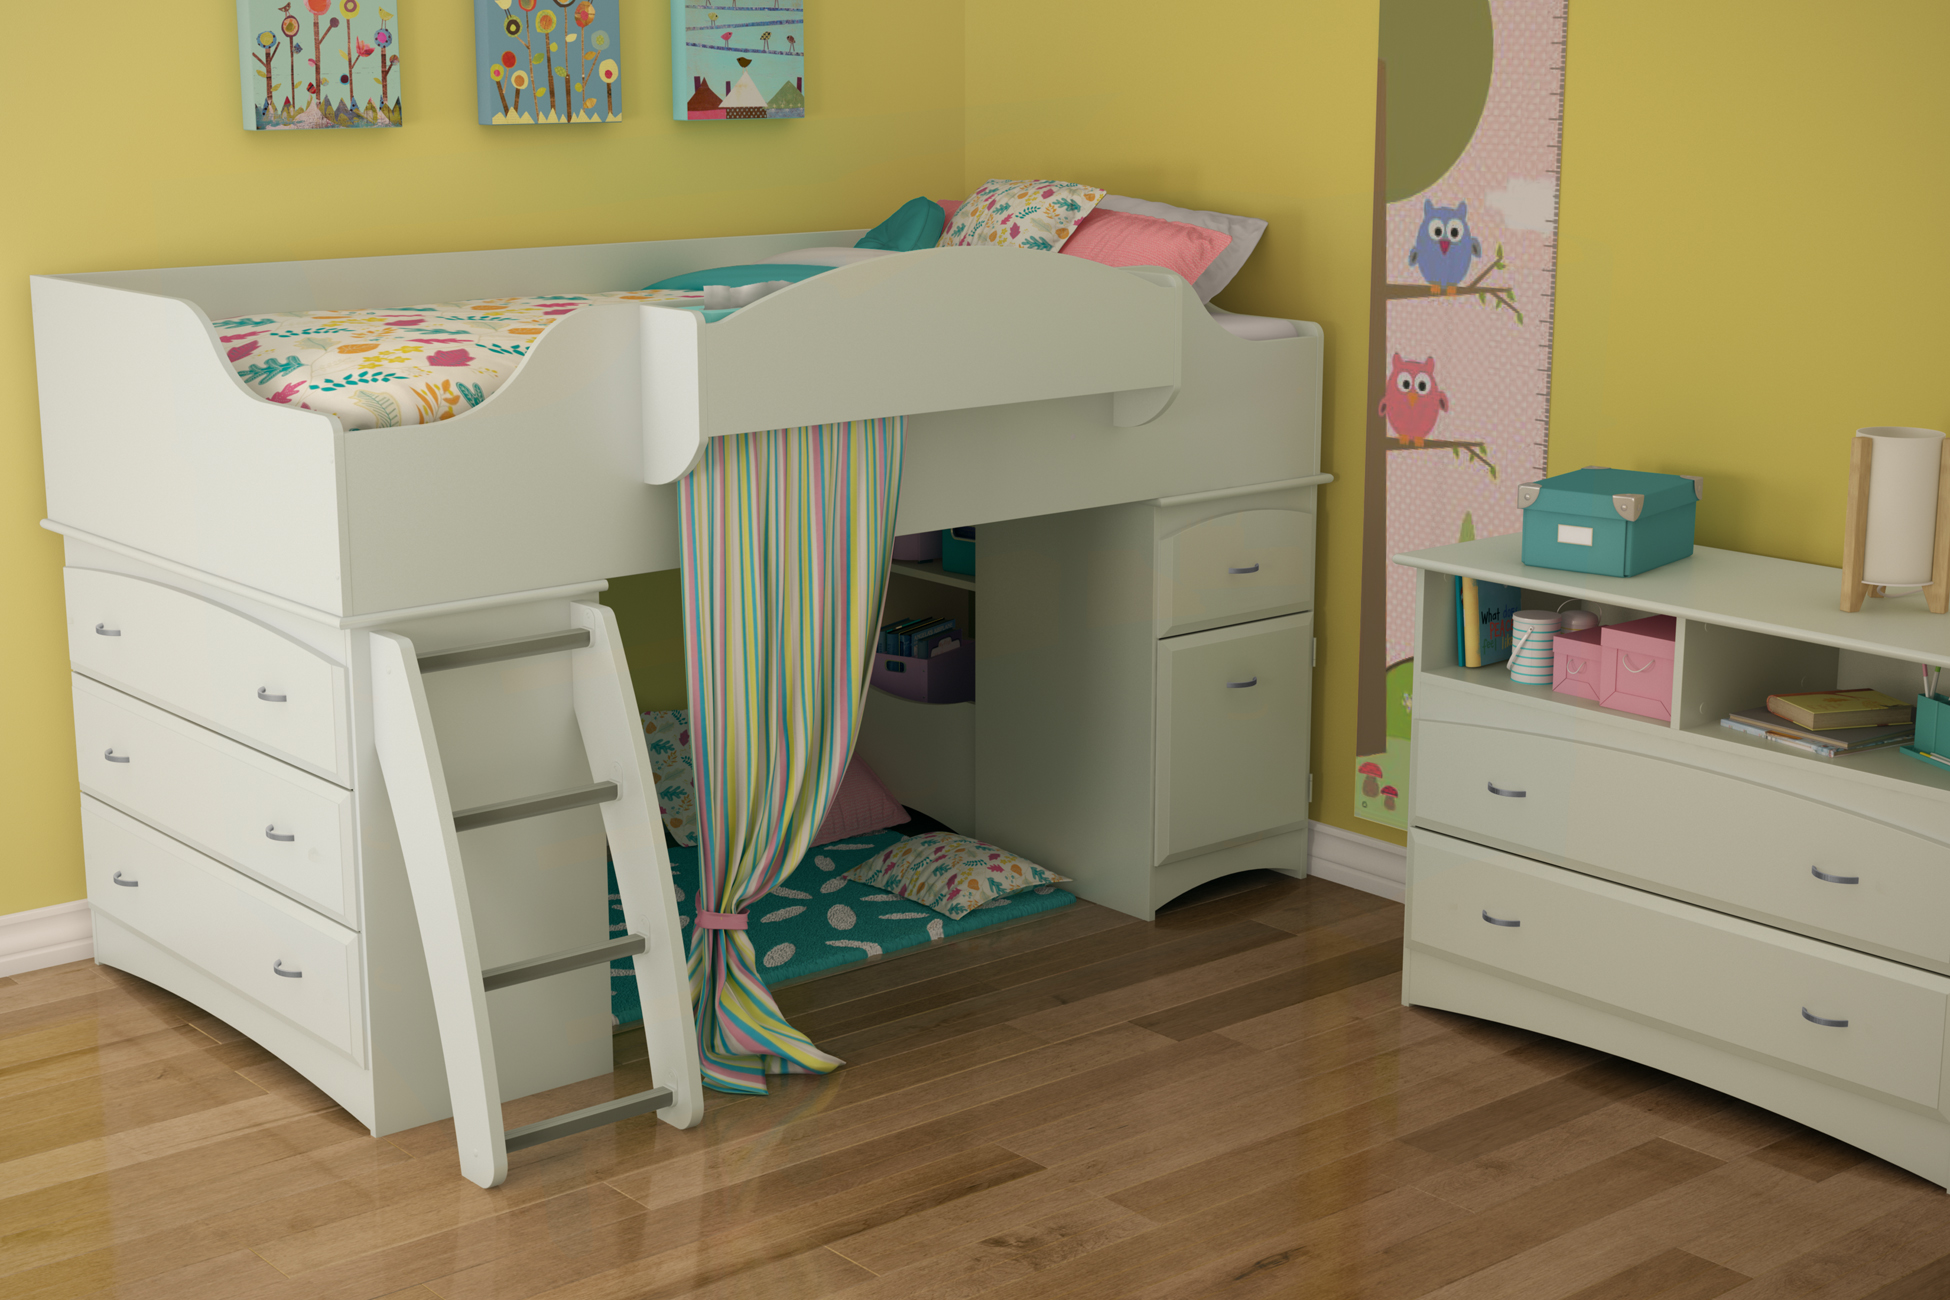 Ebay Bunk Beds for Kids | Kidsroomstogo | Mattress Sales Charlotte Nc